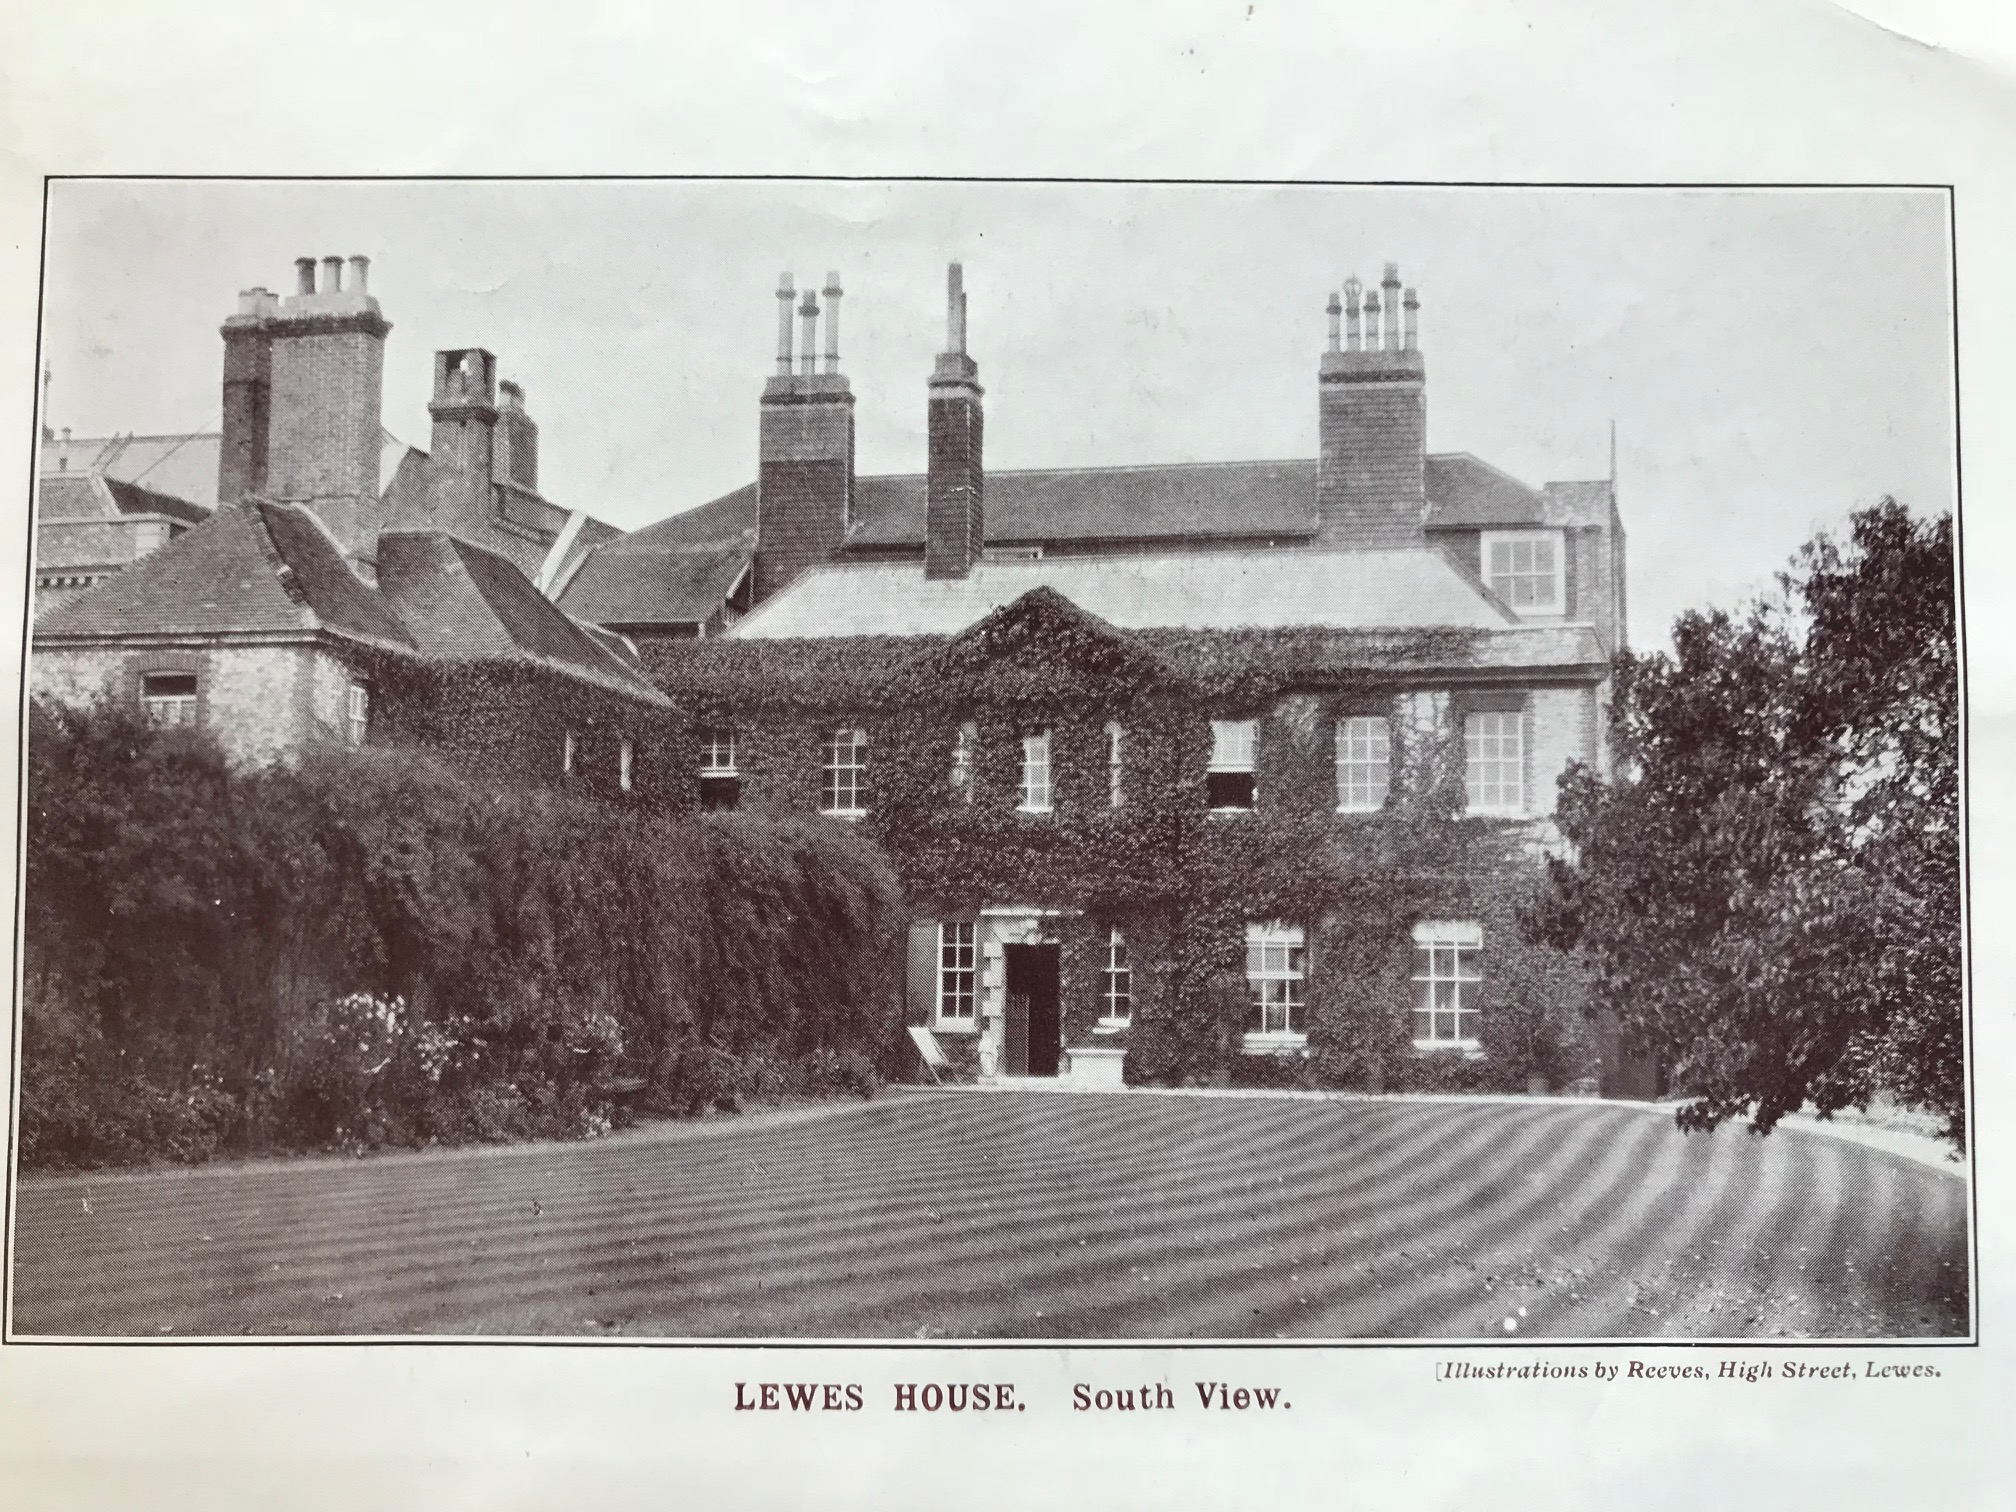 Lewes House from the gardens in the 1920s